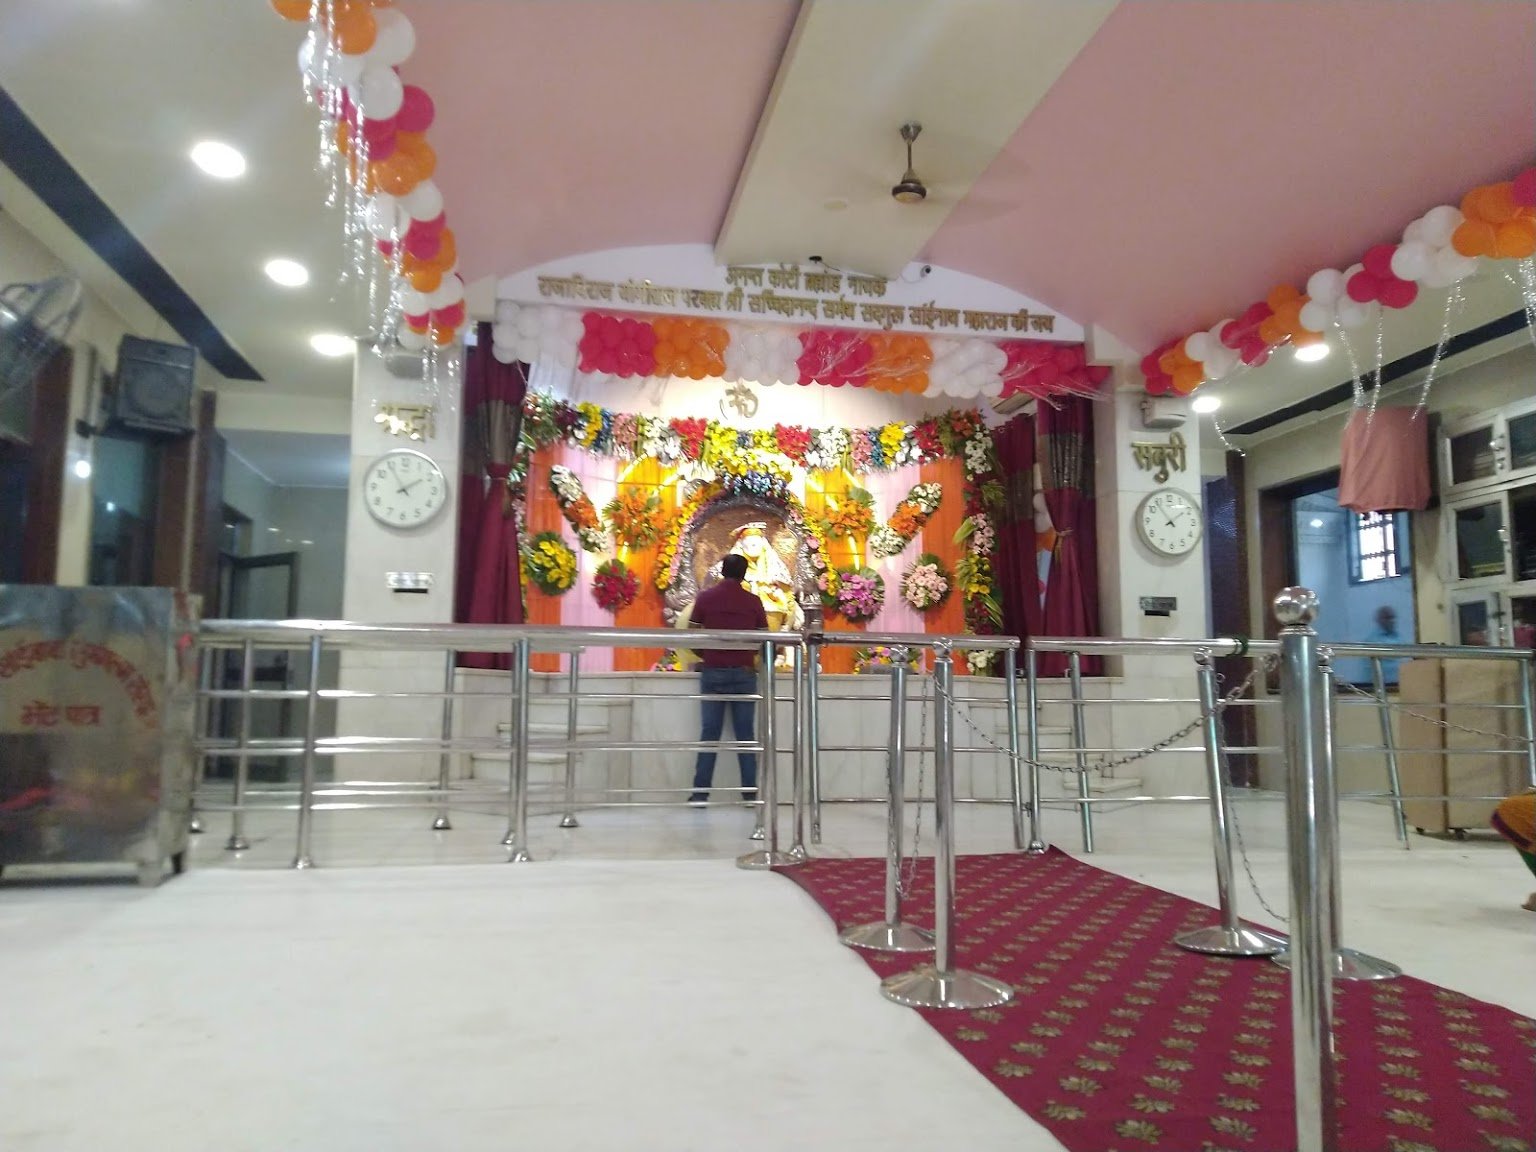 Shirdi Sai temple - Top Rated Destination For A Day Out In Faridabad